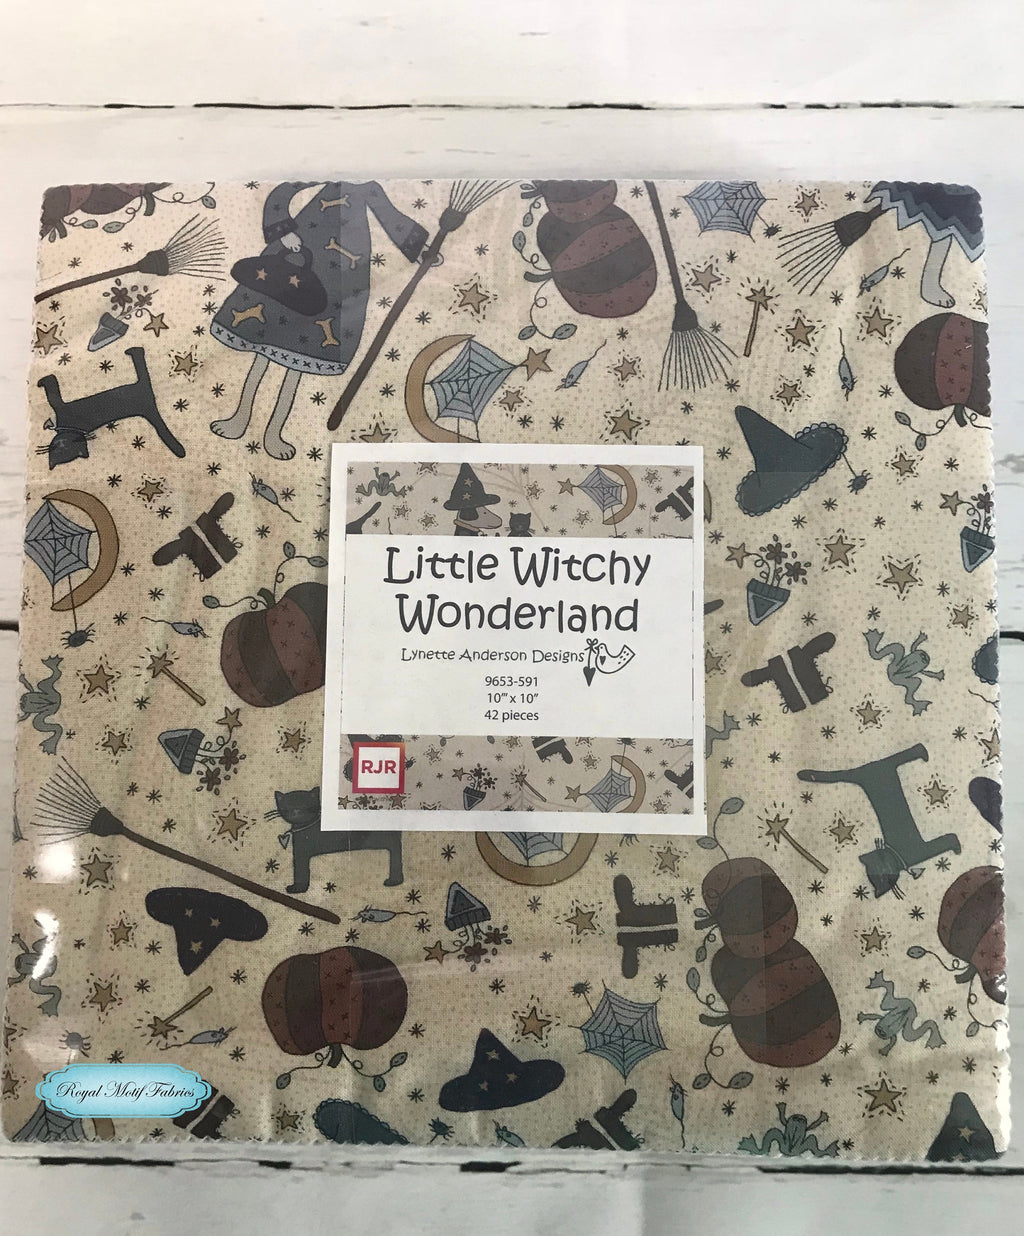 RJR Fabrics - Little Witchy Wonderland Patty Cake/Layer Cake